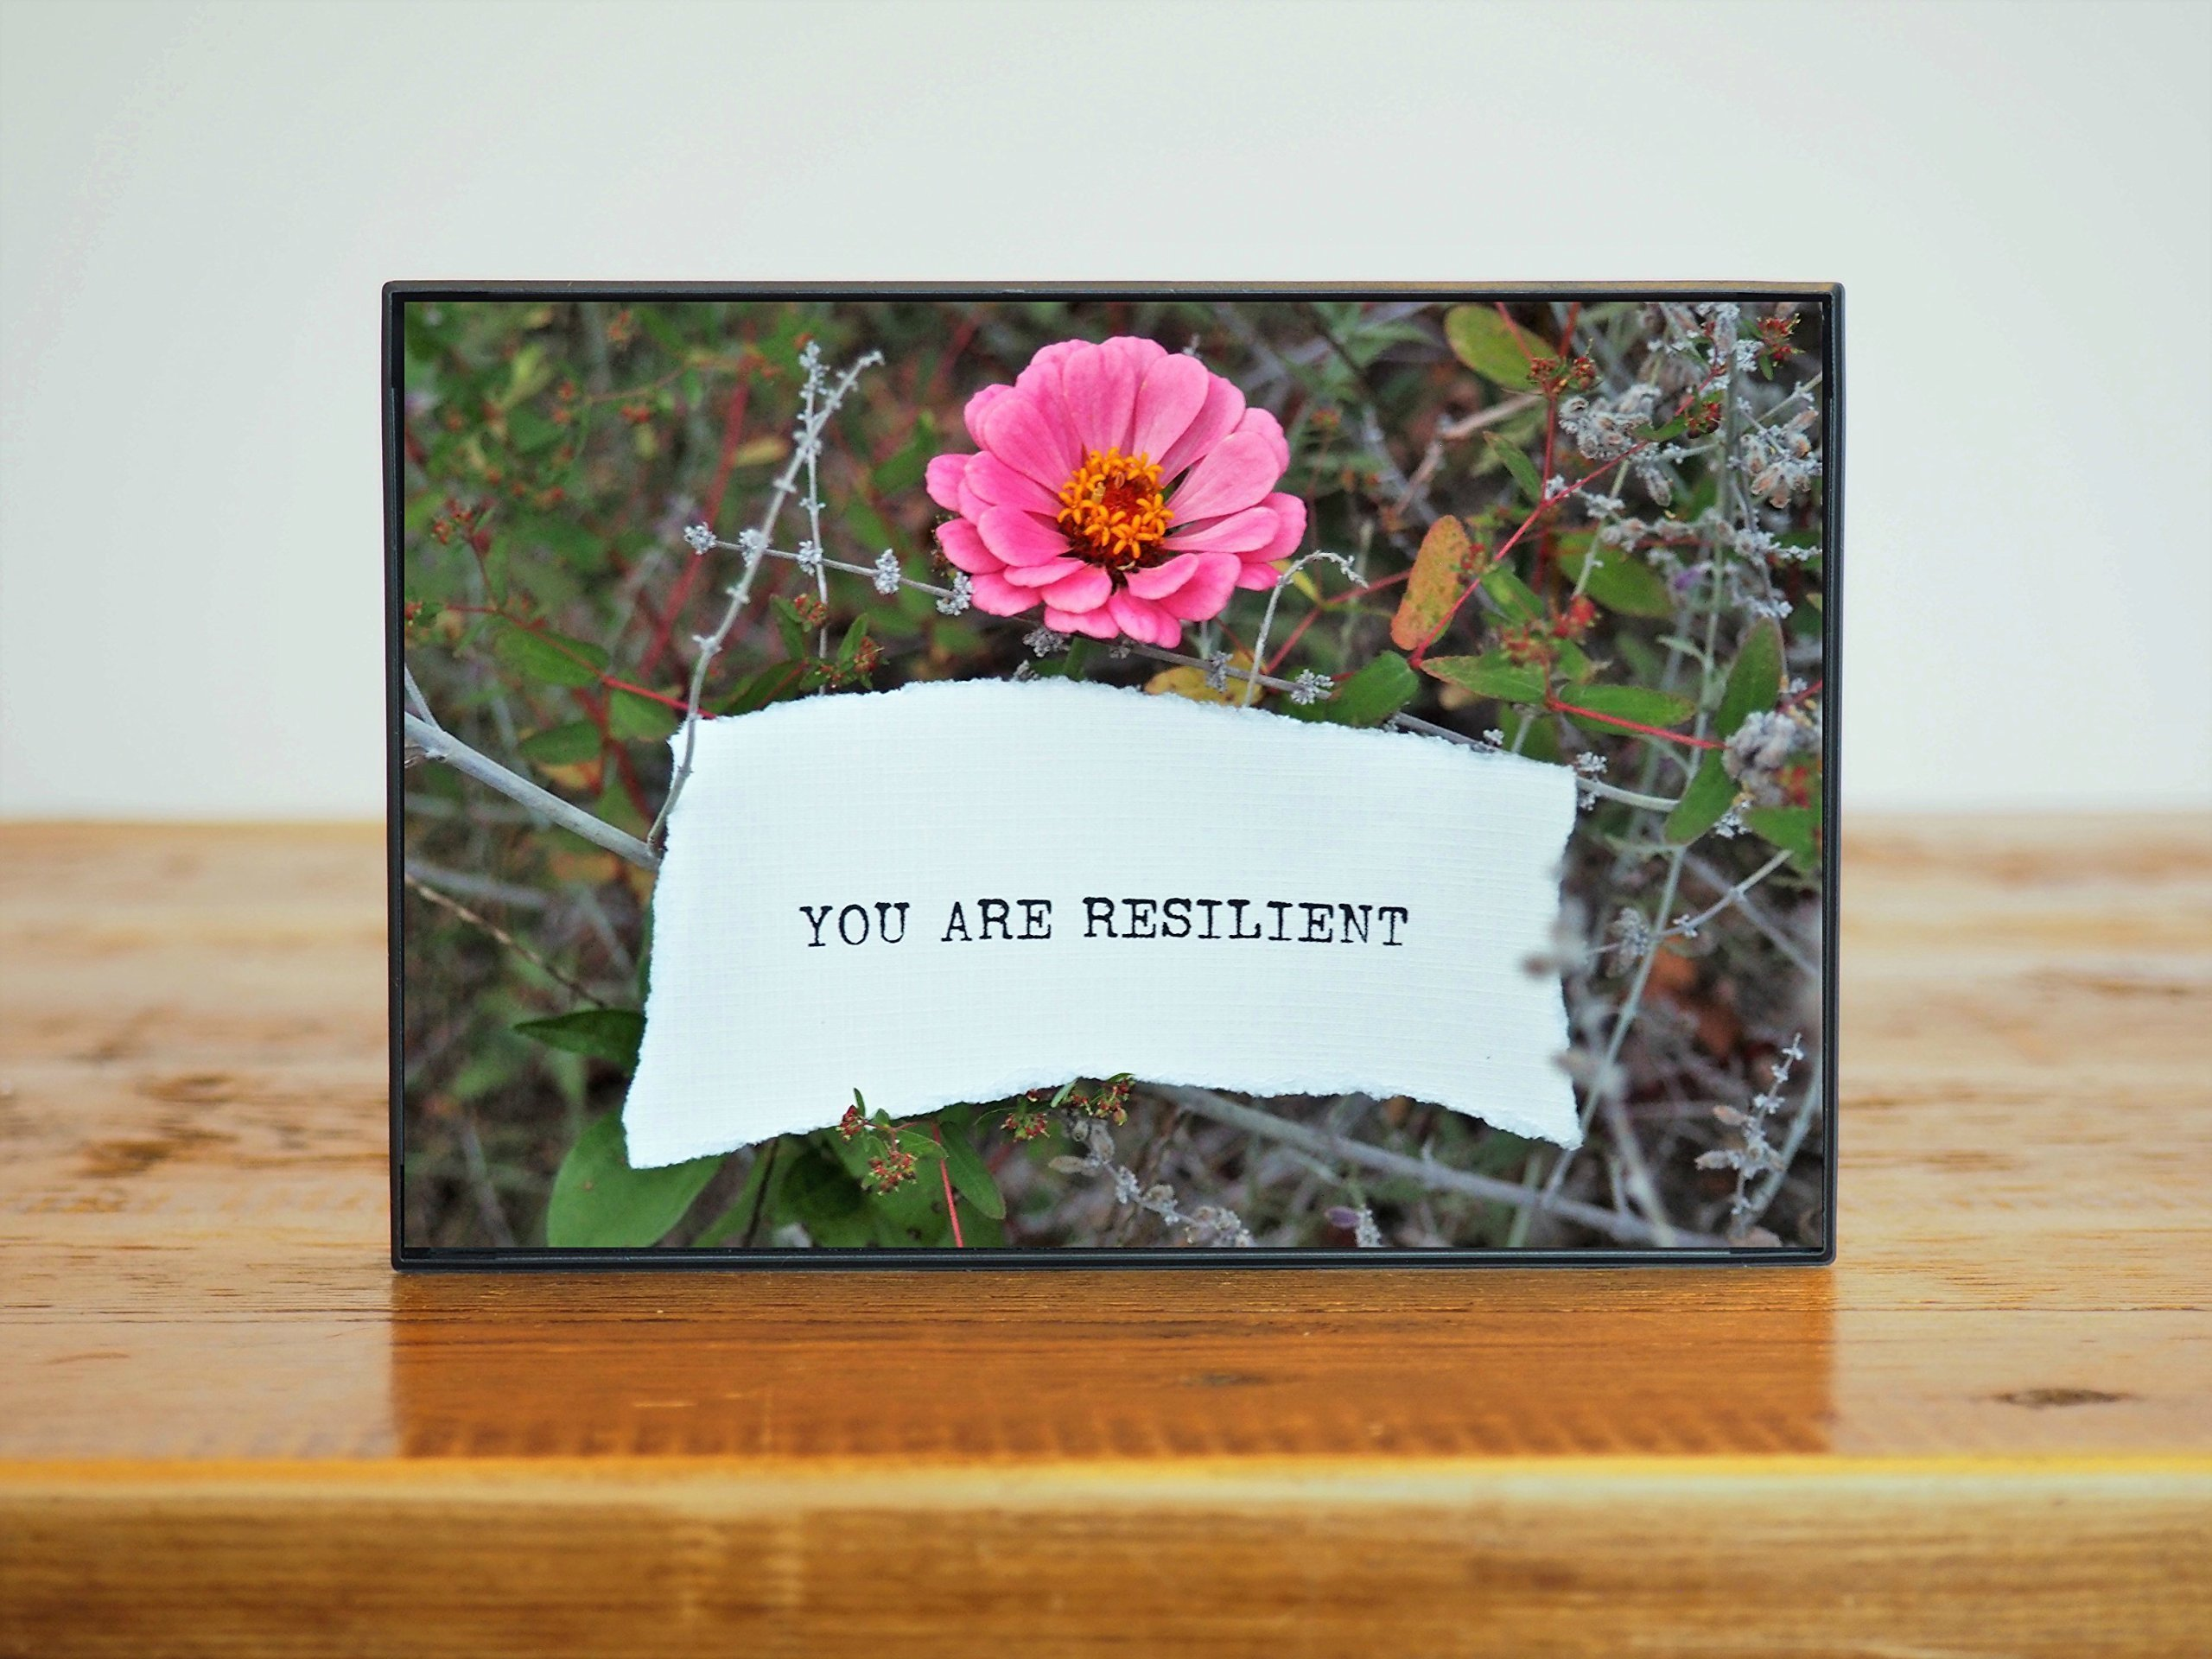 You Are Resilient Inspirational Small Framed 4x6 Photo Artwork Bright Pink Flower in Nature Gift